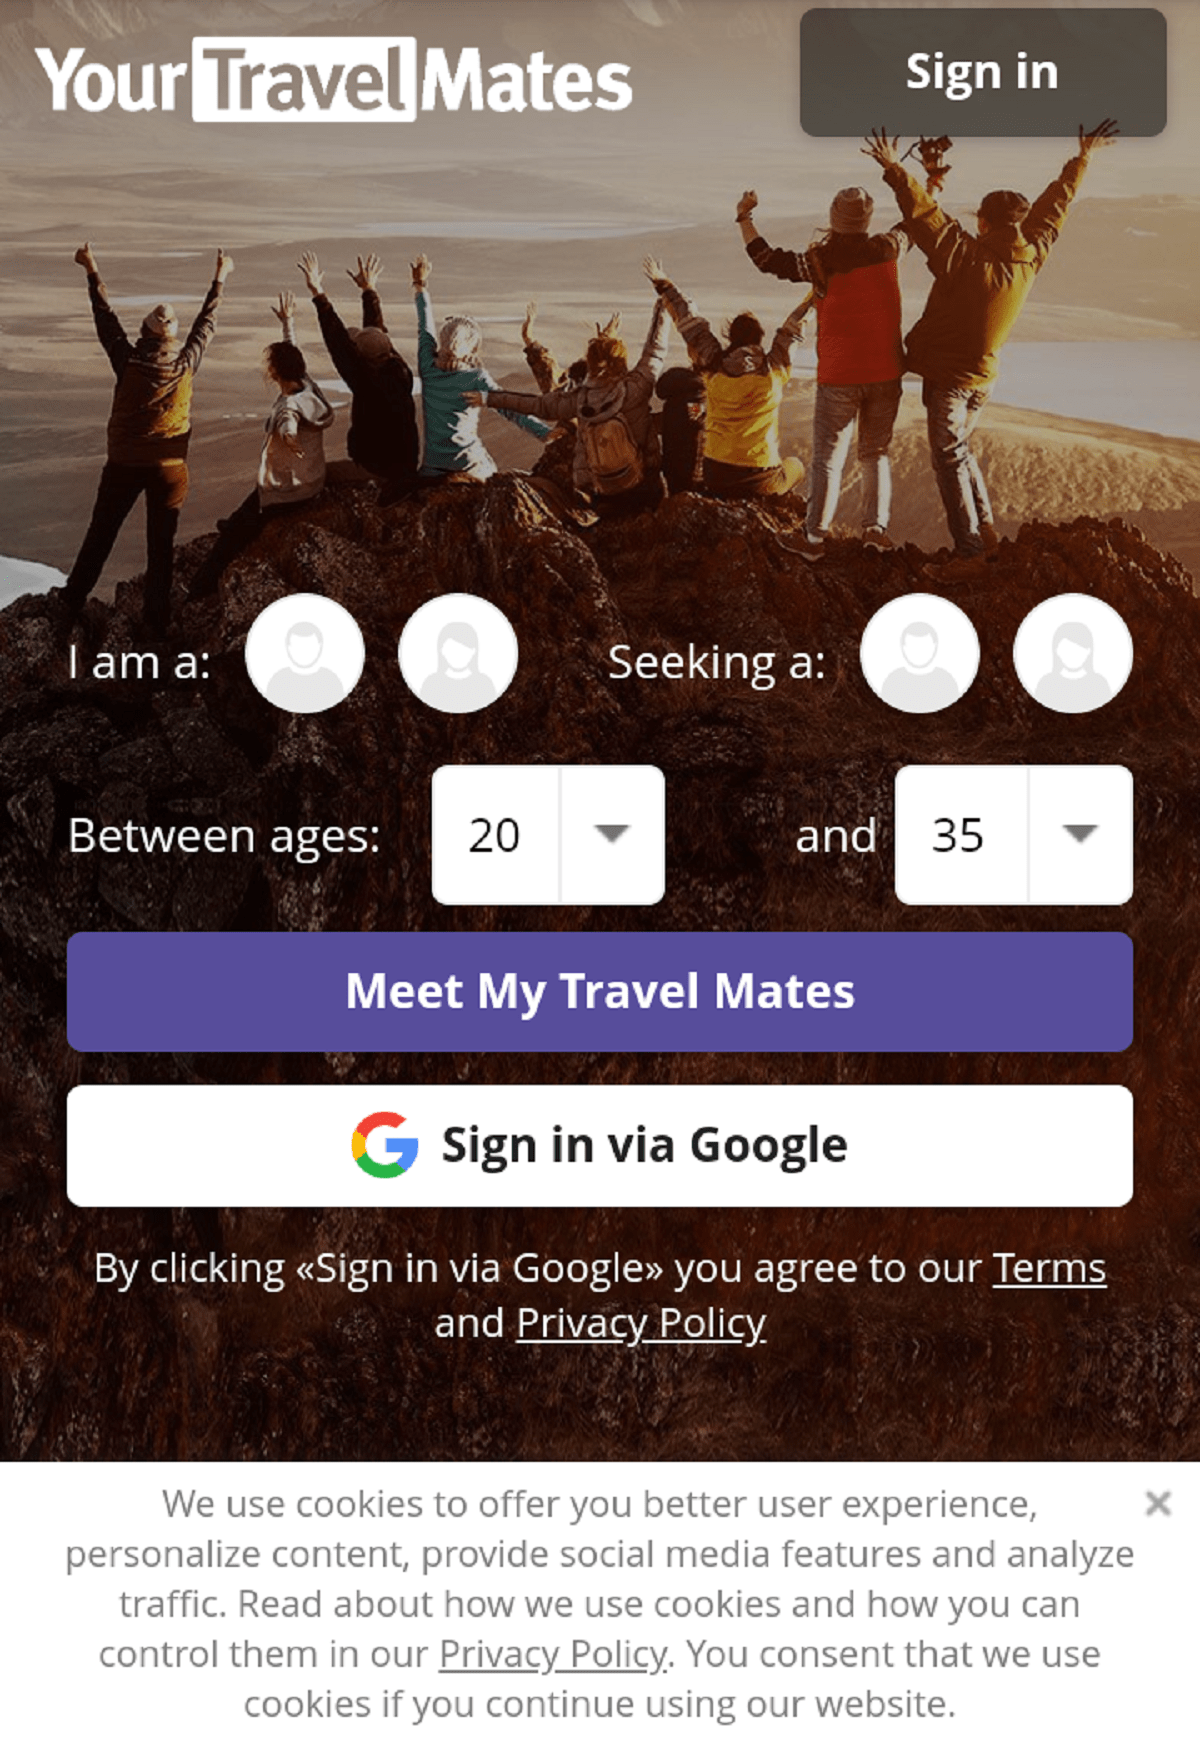 Travel mates scam your Your Travel